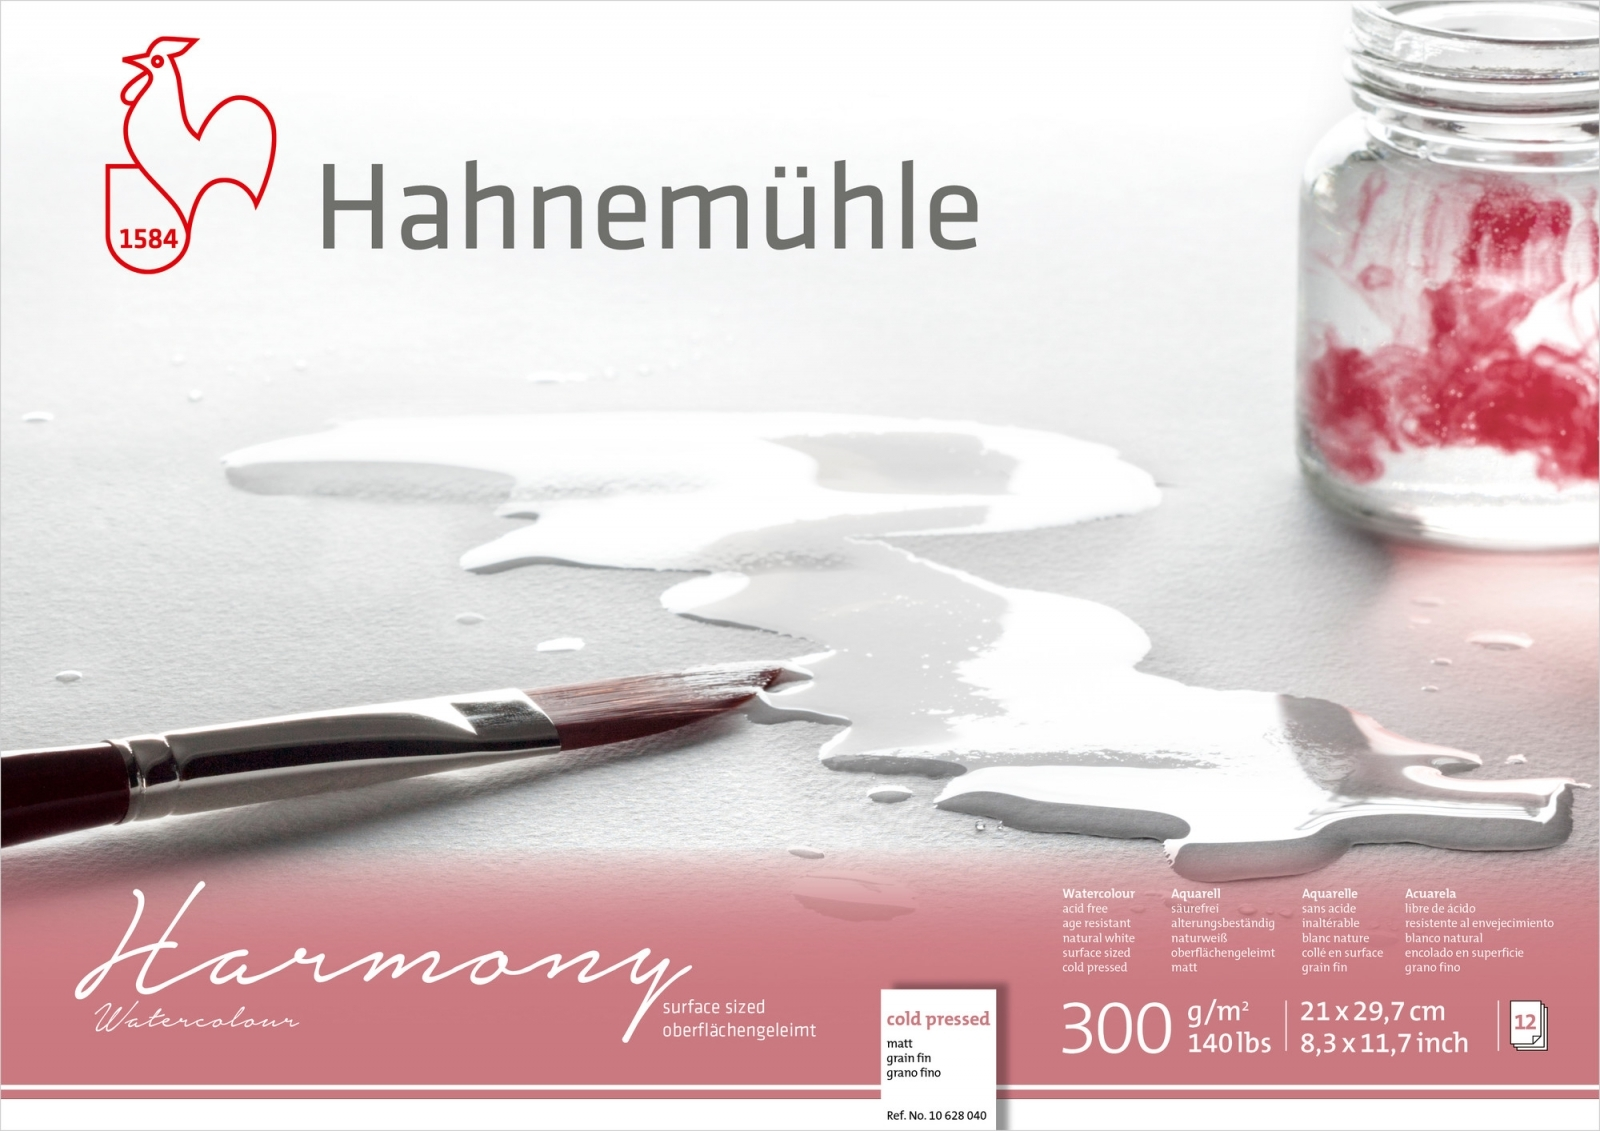 PAPEL HAHNEMUHLE HARMONY WATERCOLOUR, 300 G/M², COLD PRESSED 12fls 21x29,7cm- A4 (10628040) - Papelaria Botafogo